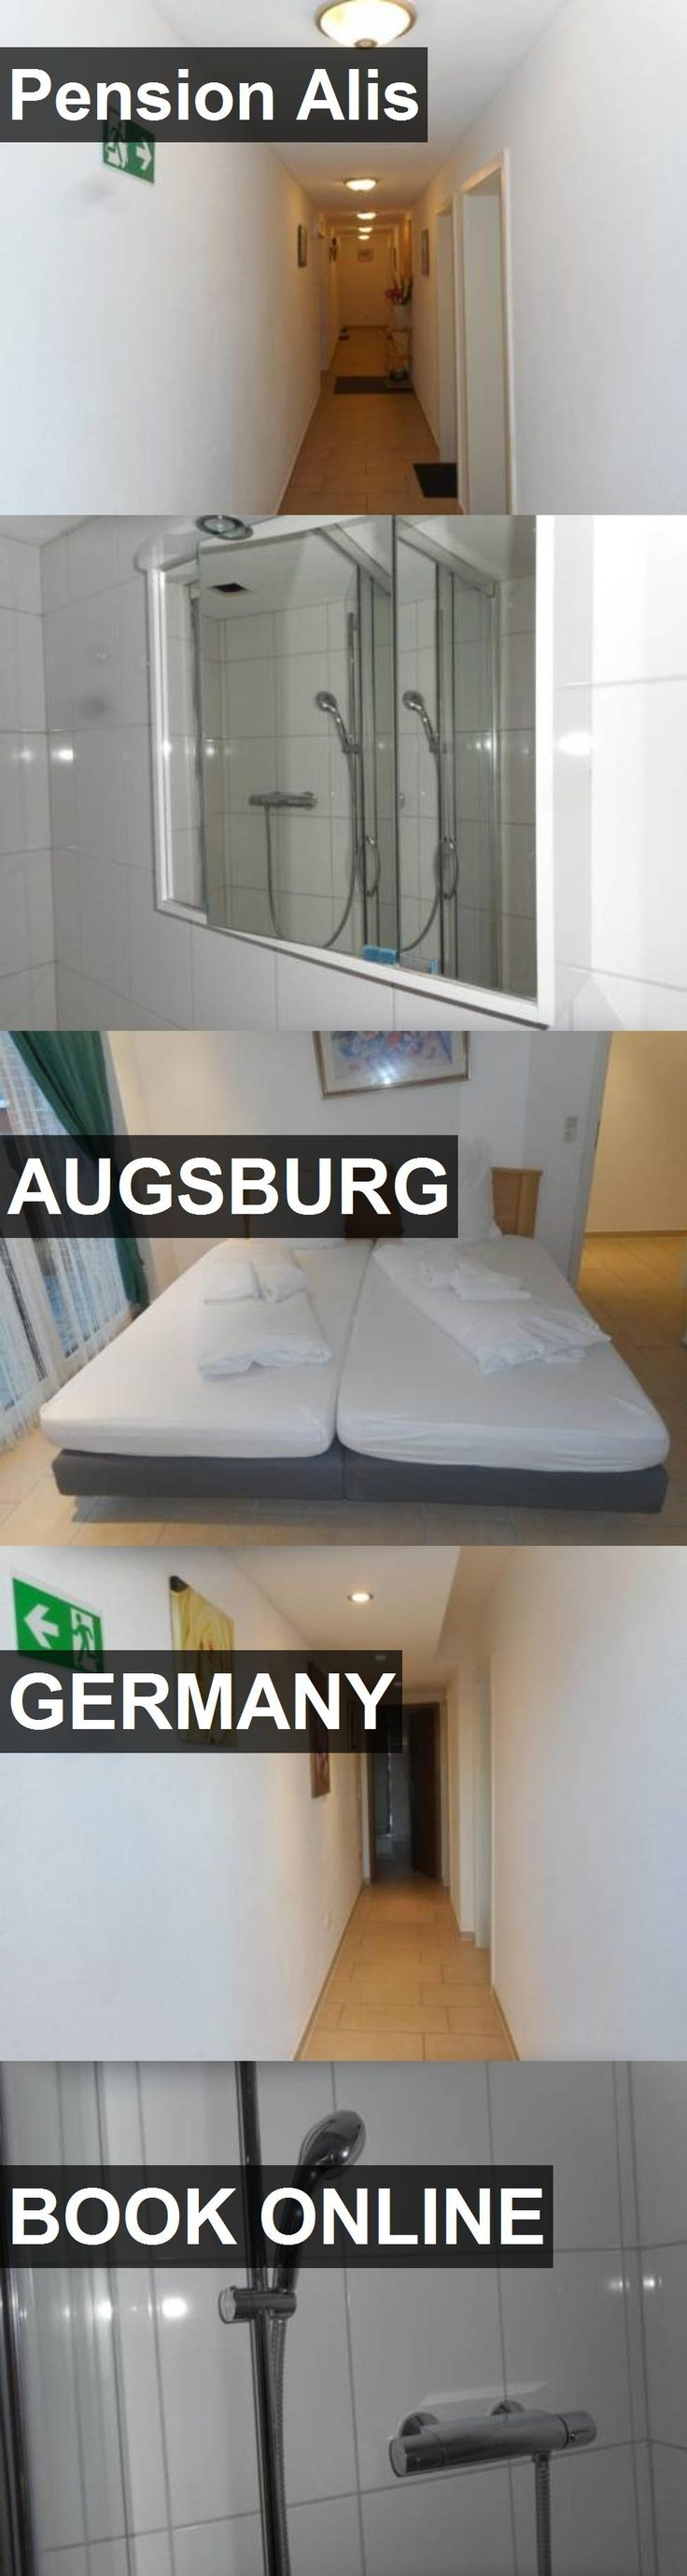 Hotel Pension Alis in Augsburg, Germany. For more information, photos, reviews and best prices please follow the link. #Germany #Augsburg #travel #vacation #hotel